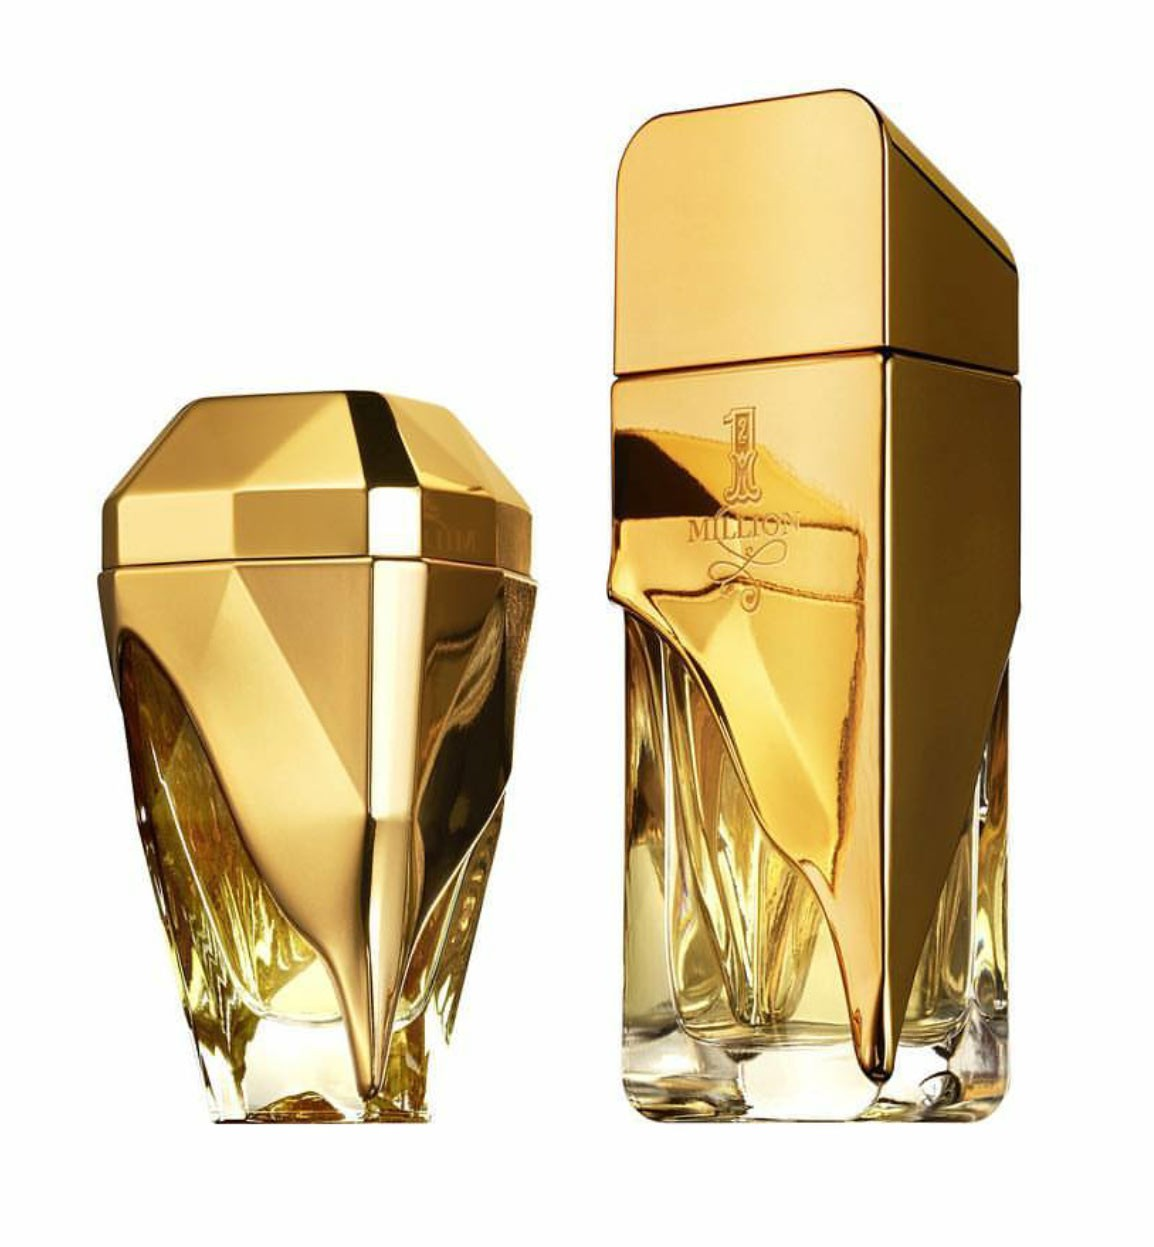 Изображение парфюма Paco Rabanne Lady Million Eau de Parfum Collector Edition